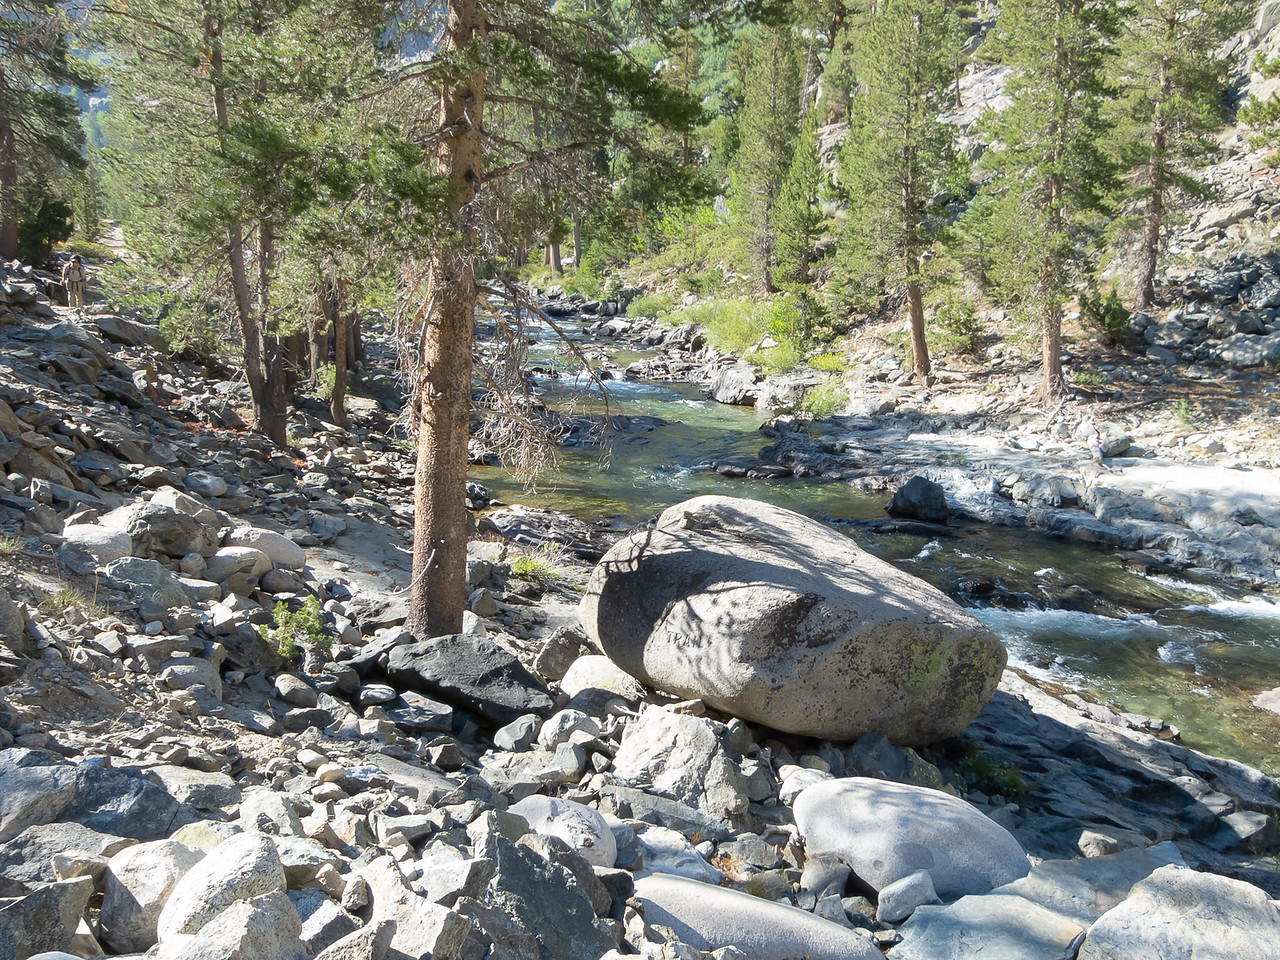 Sunday, August 11.  Back to the Muir Trail Rock.